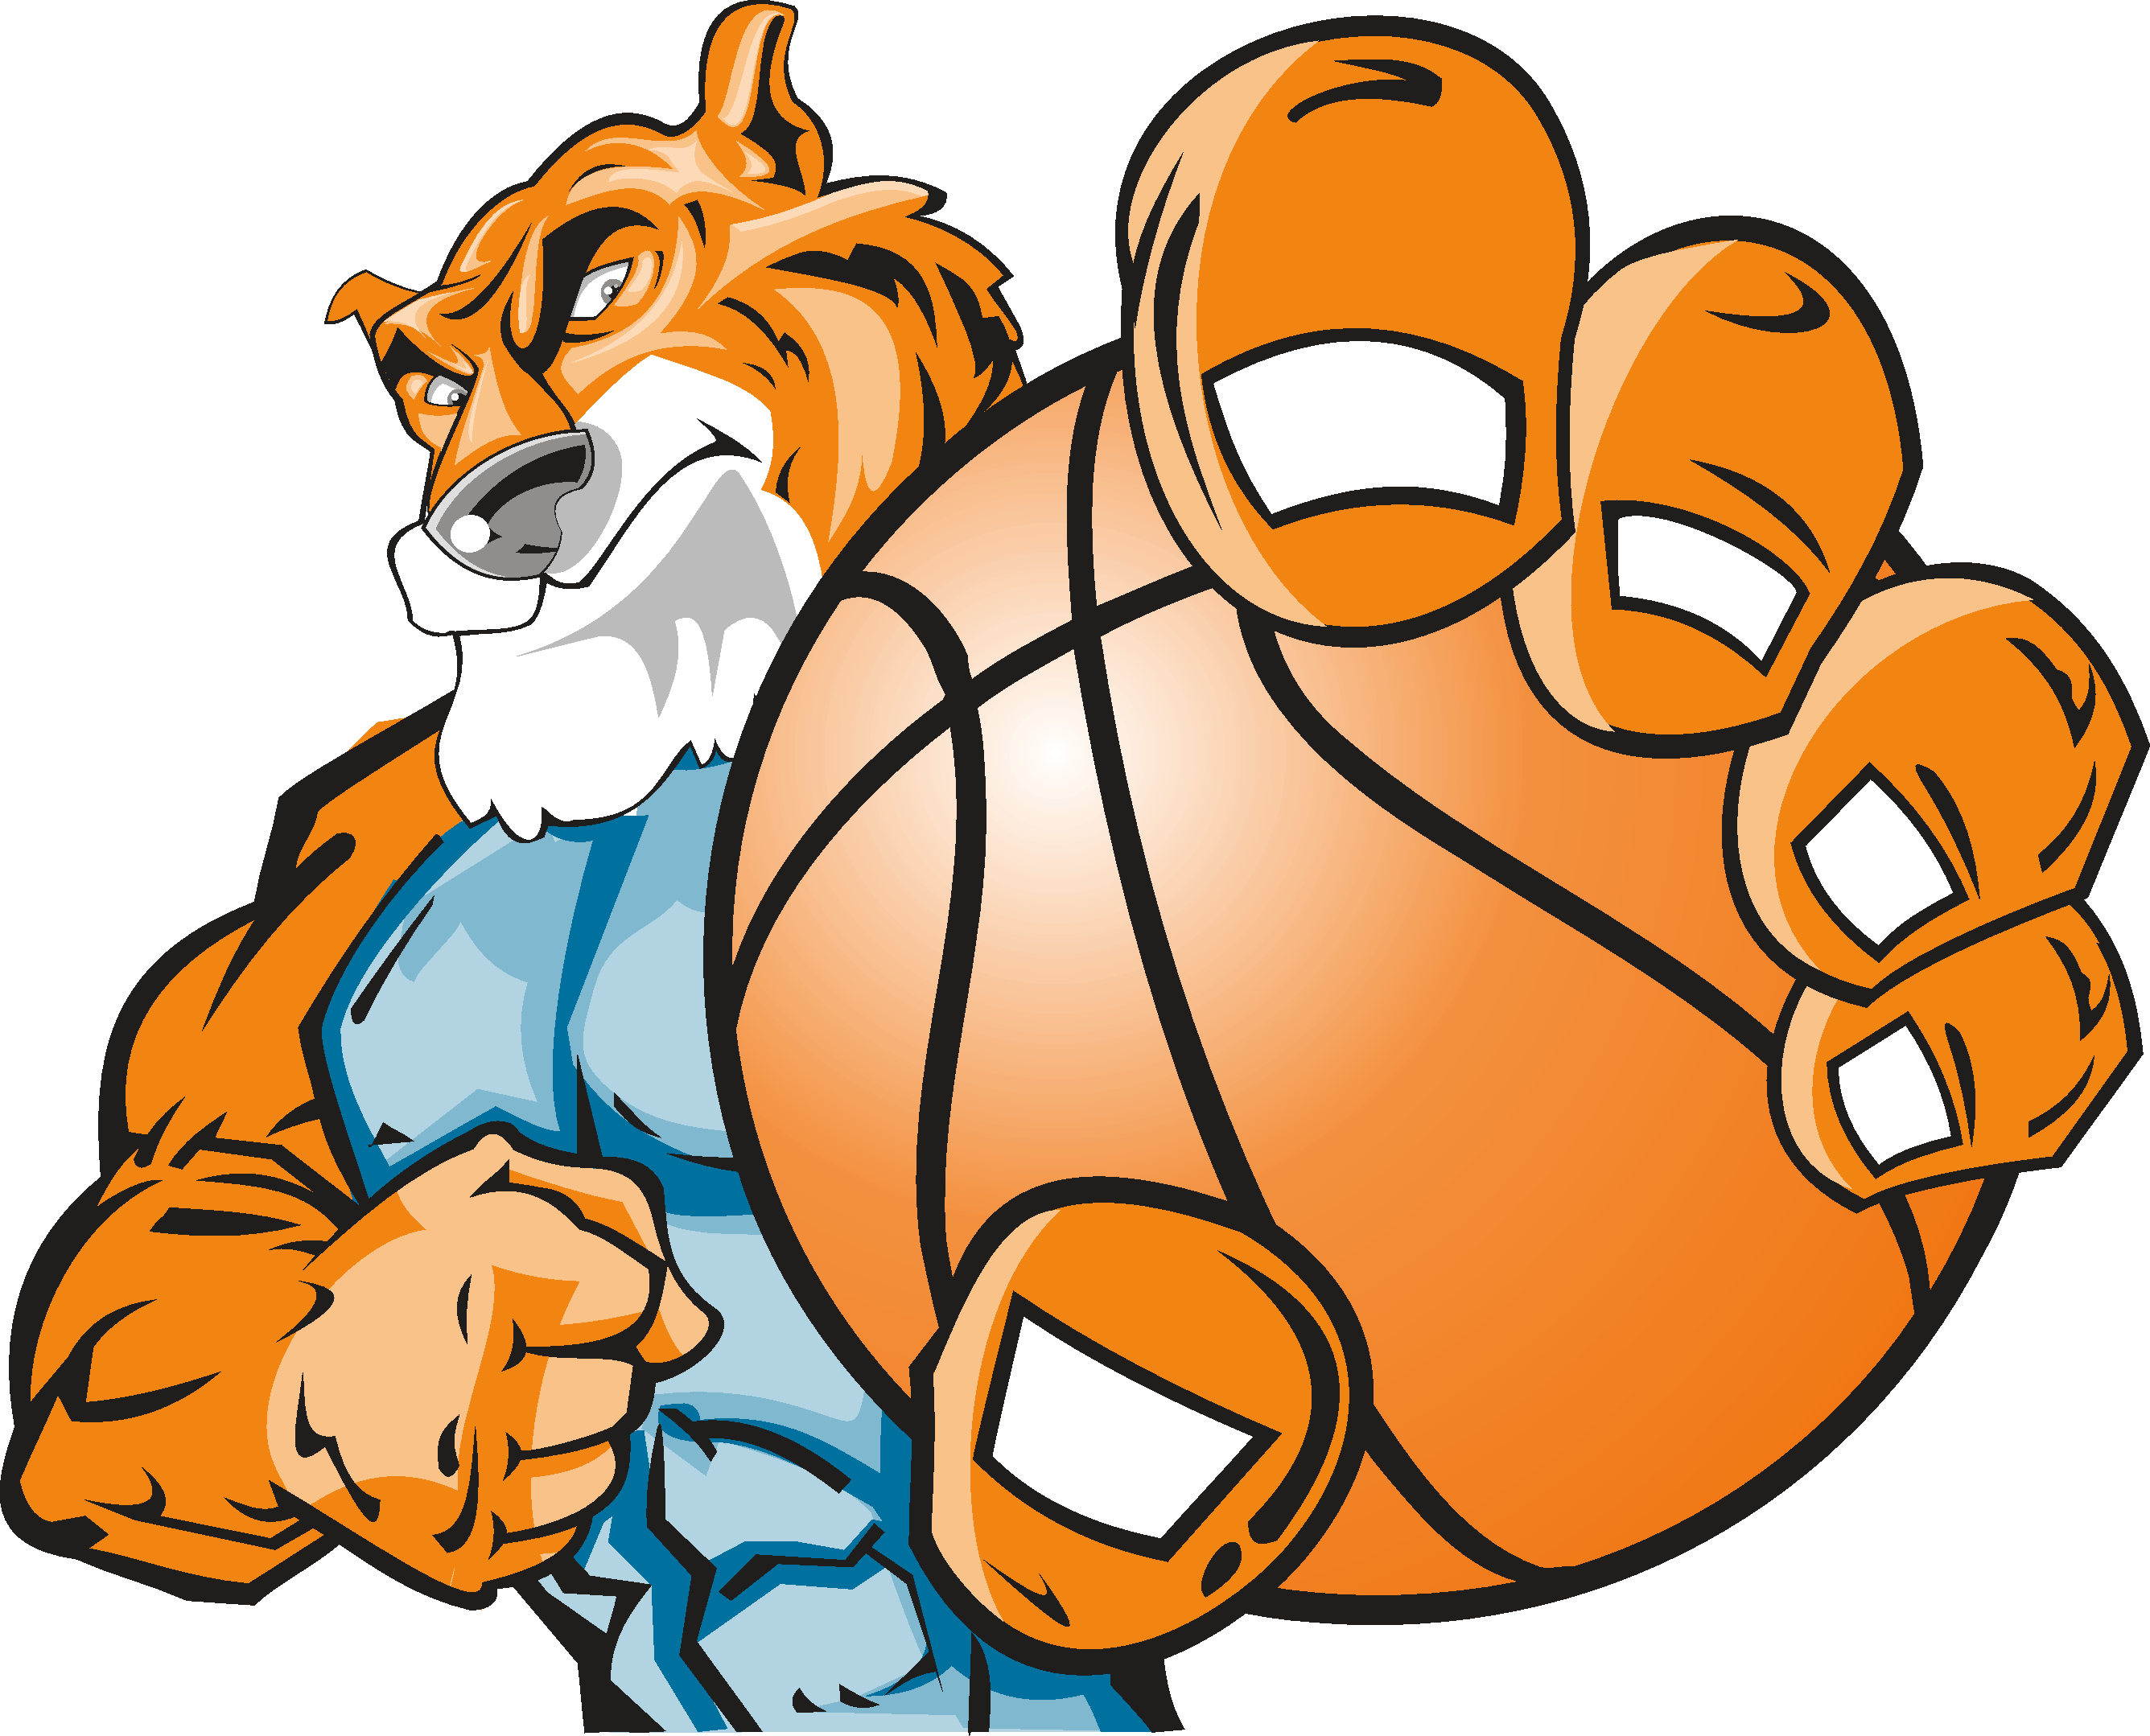 Tiger dunking basketball clipart png transparent download March Madness Clipart - clipart png transparent download